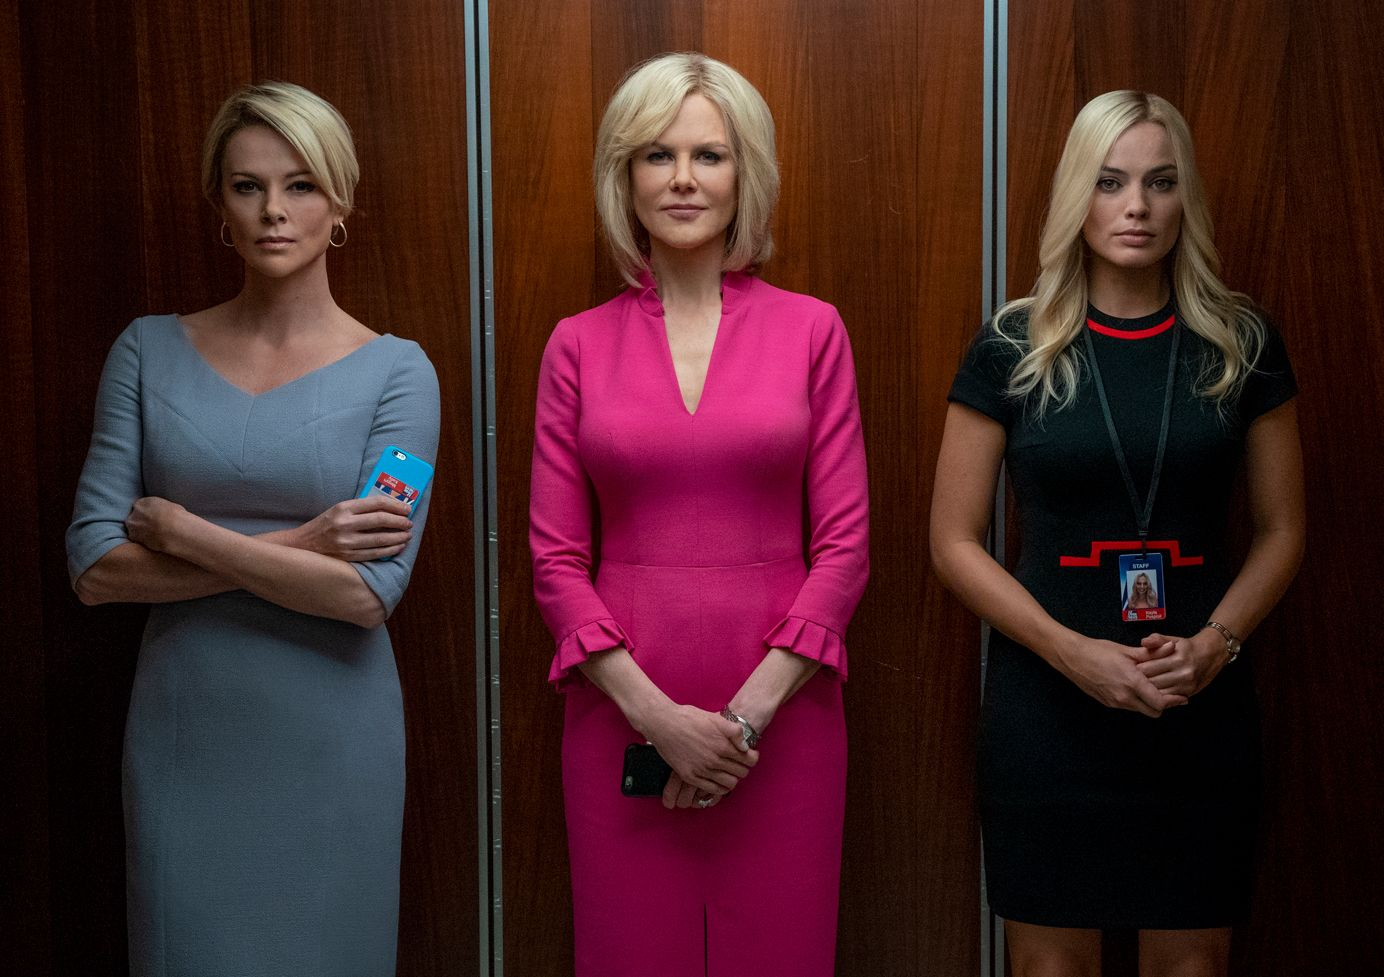 Everything We Know So Far About Bombshell, Jay Roach's Upcoming Film About Roger Ailes and the Women of Fox